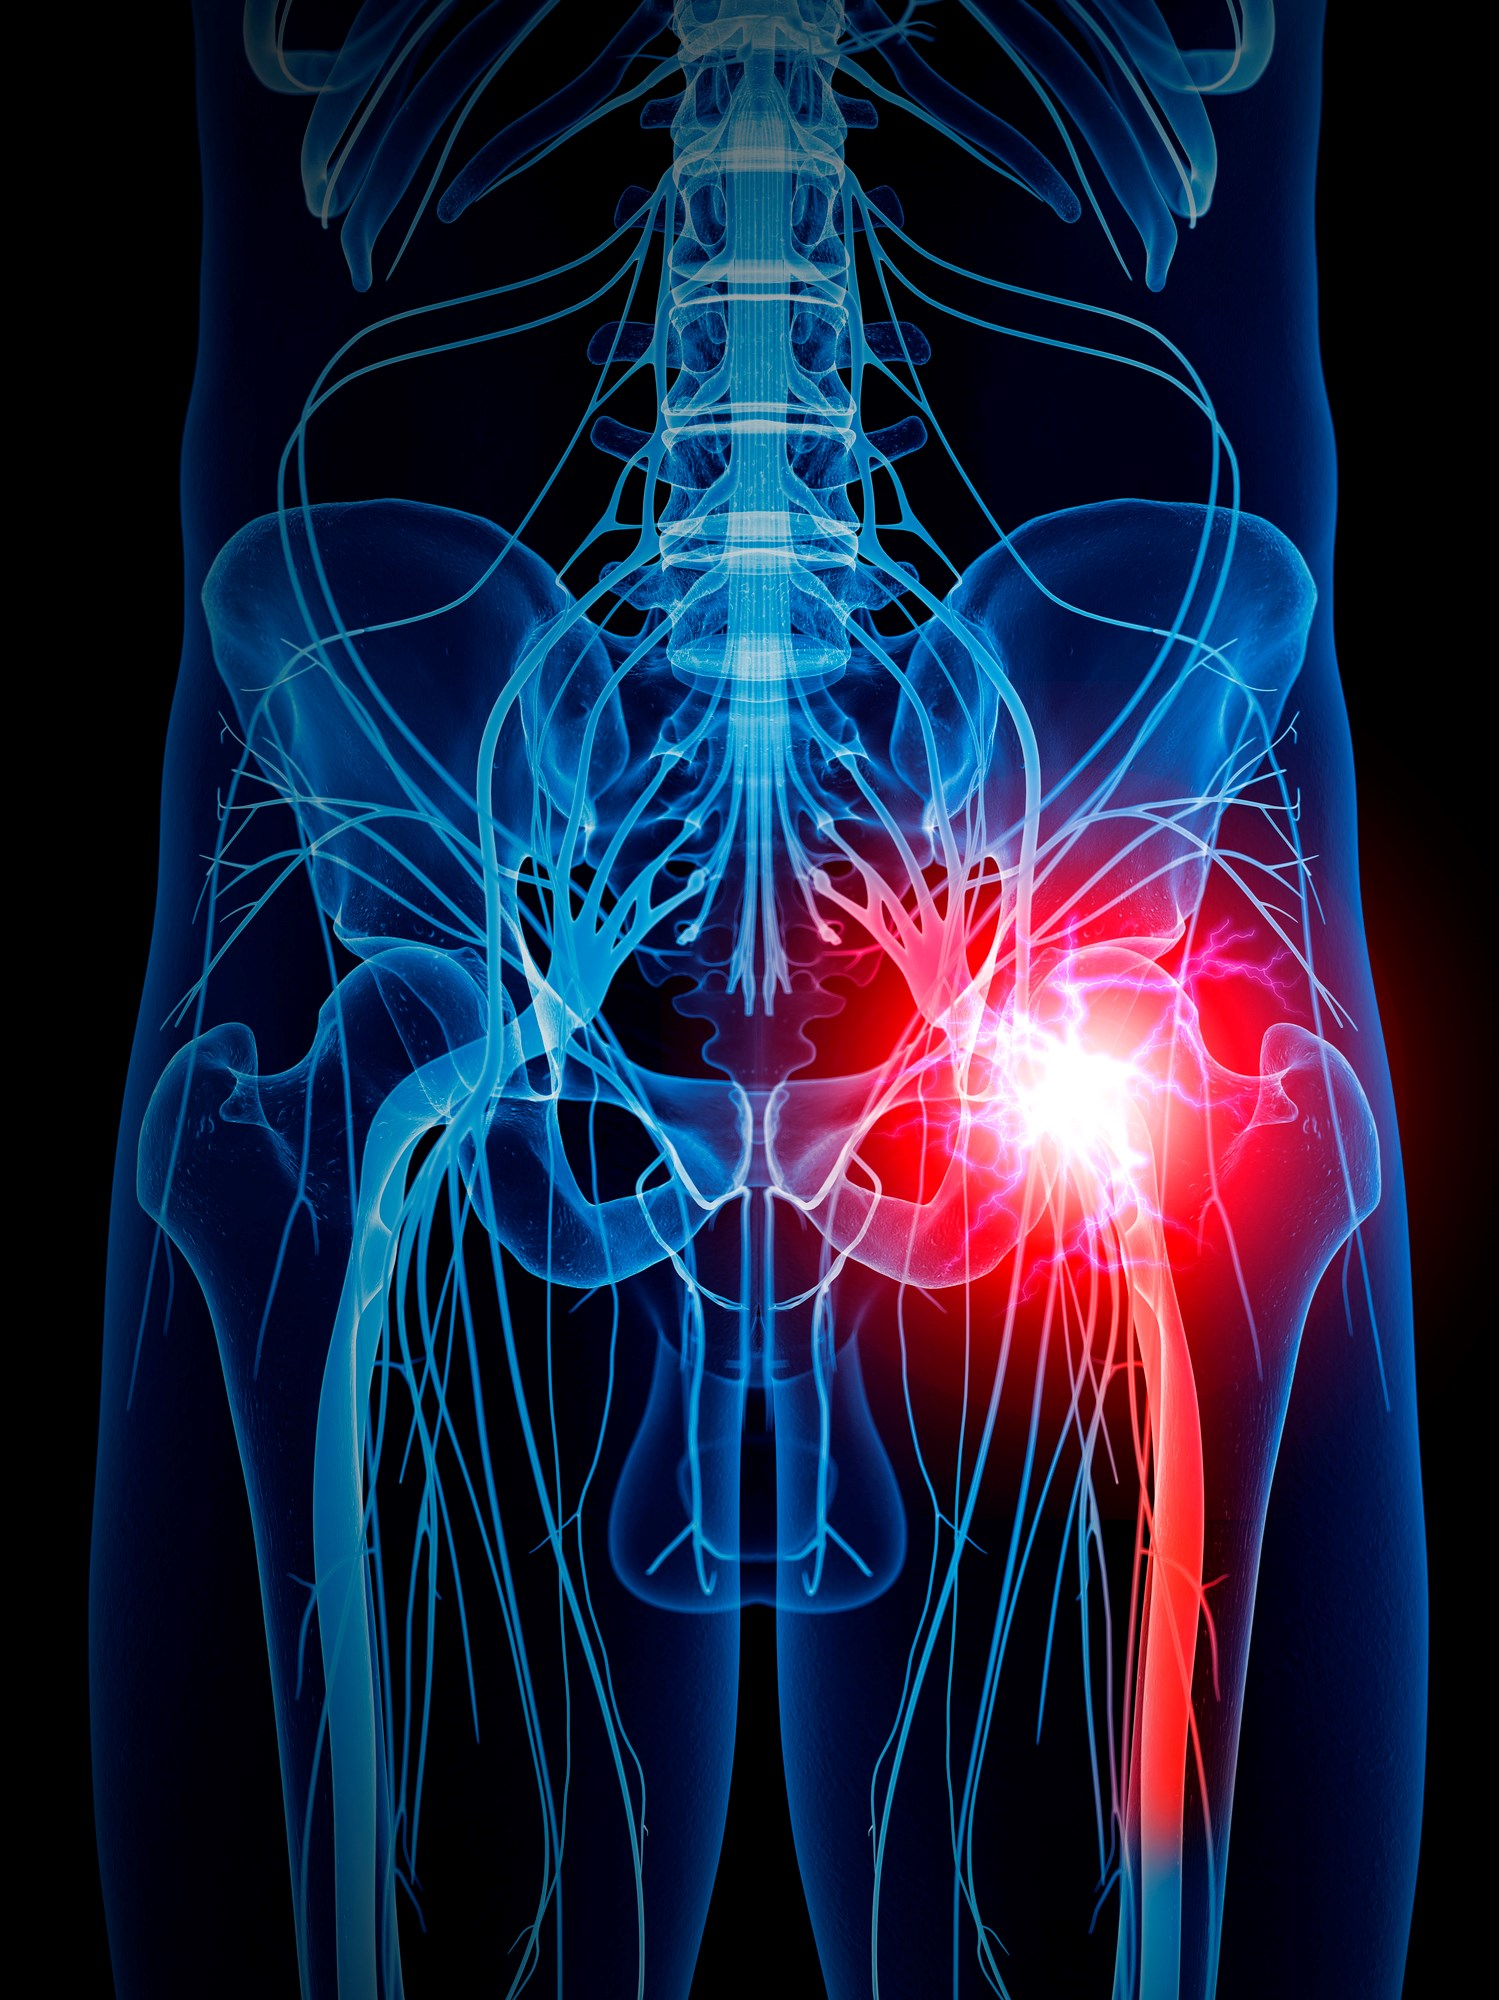 Pregabalin Not Effective for Sciatica Treatment